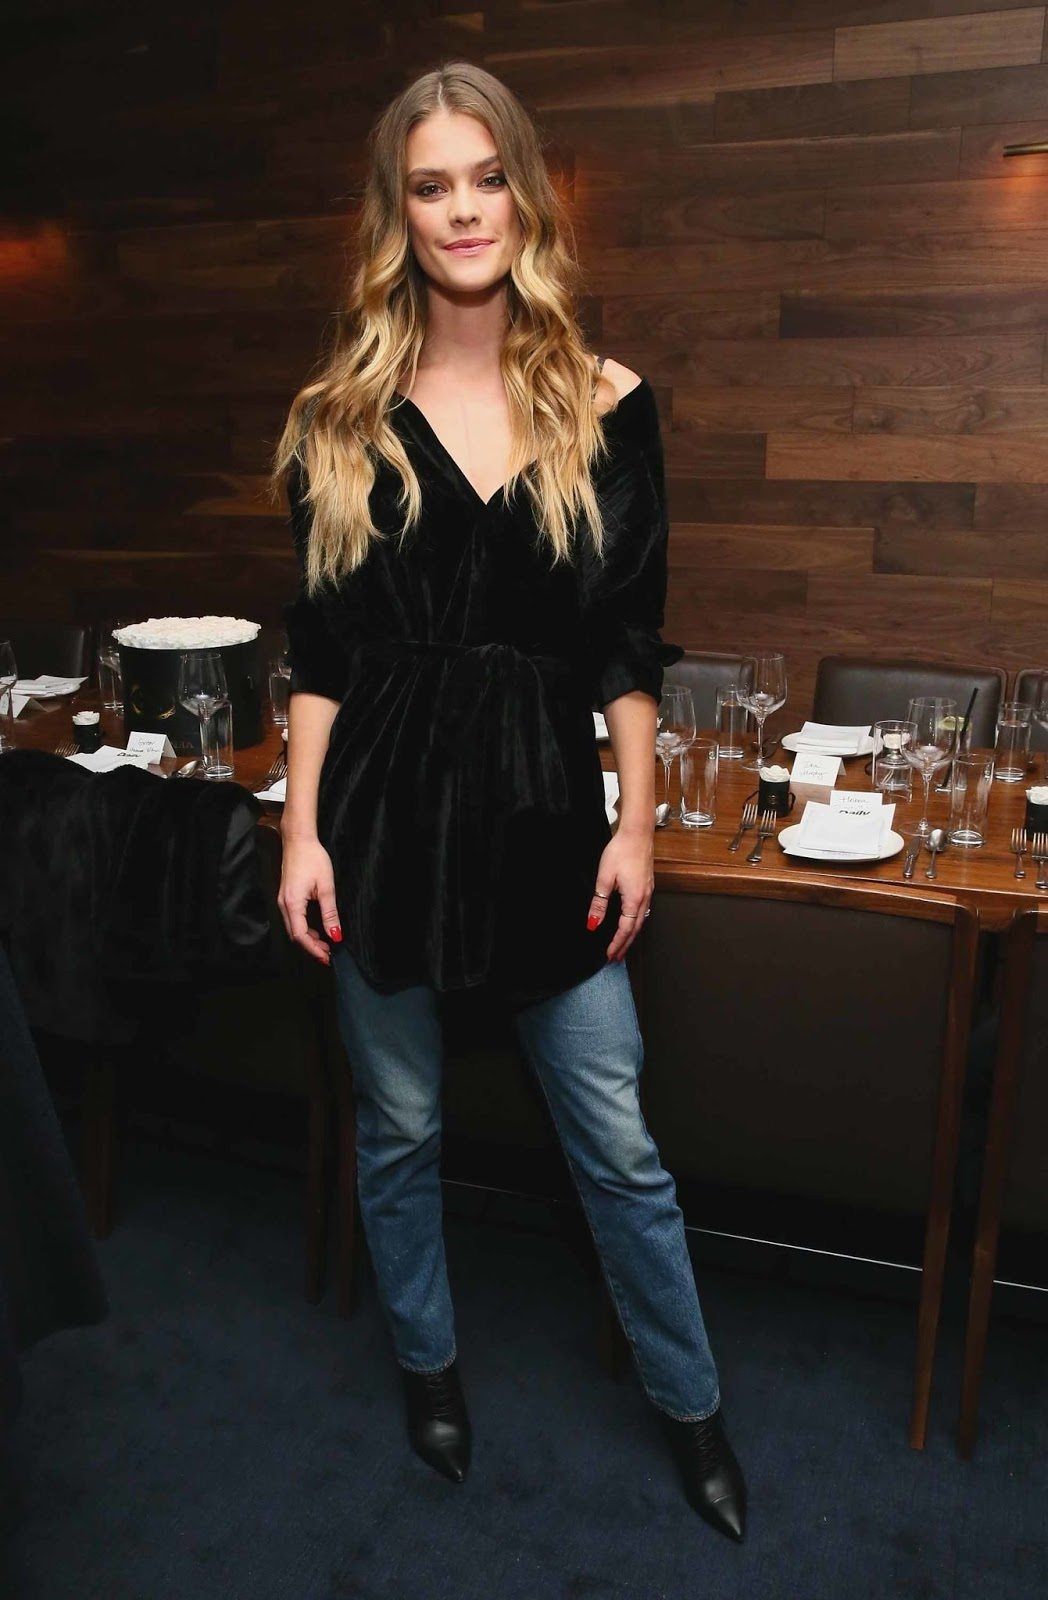 Nina Agdal attends Jeffrey Rudes Of L'Agence Dinner on February 05, 2019 in New York City